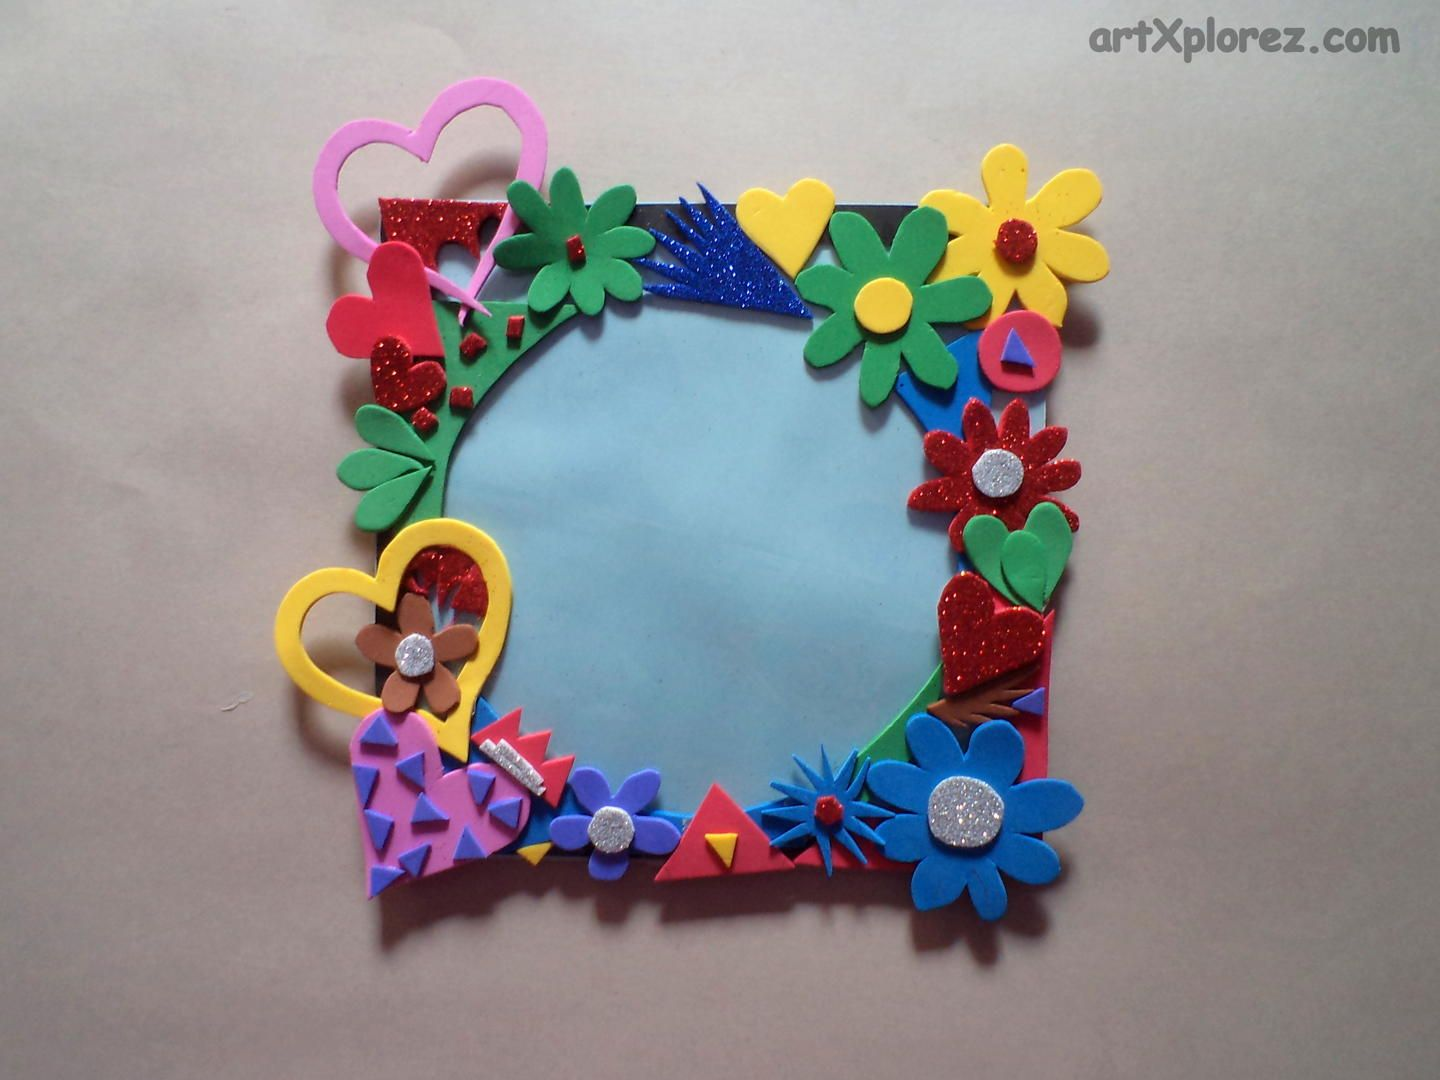 handmade crafts using waste materials google search